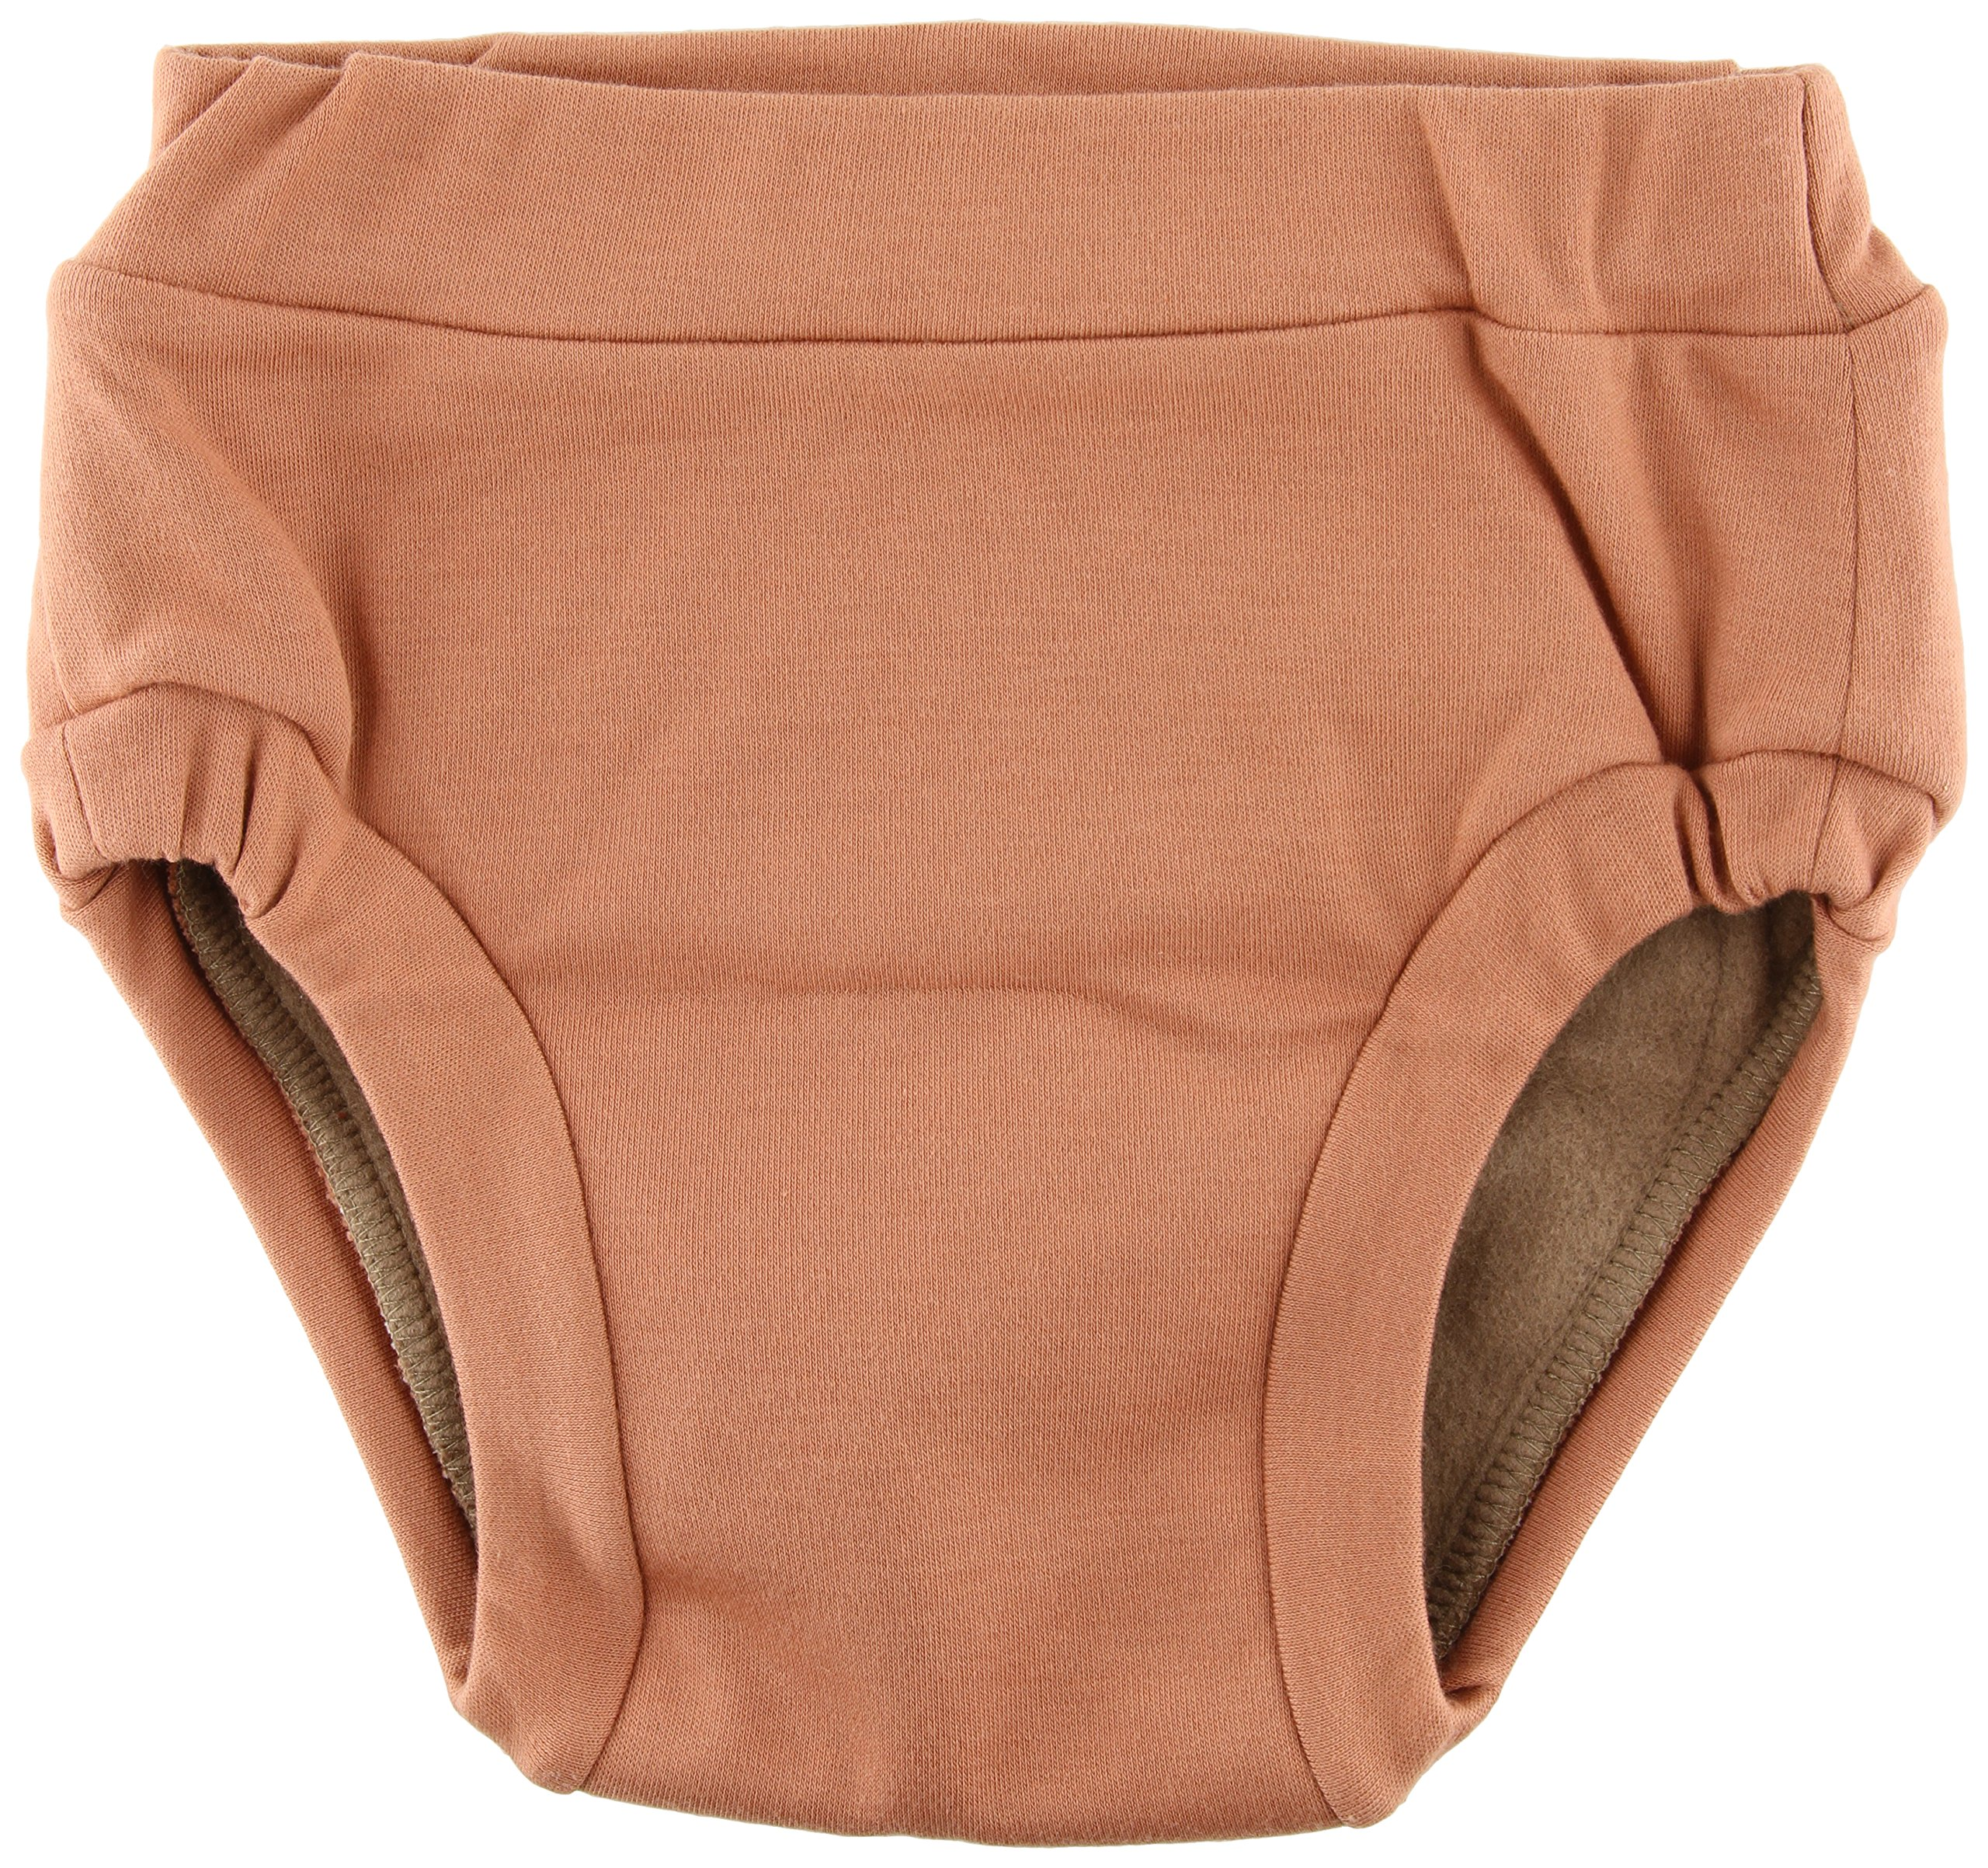 EcoPosh Recycled Organic Training Pant, Ginger, Medium